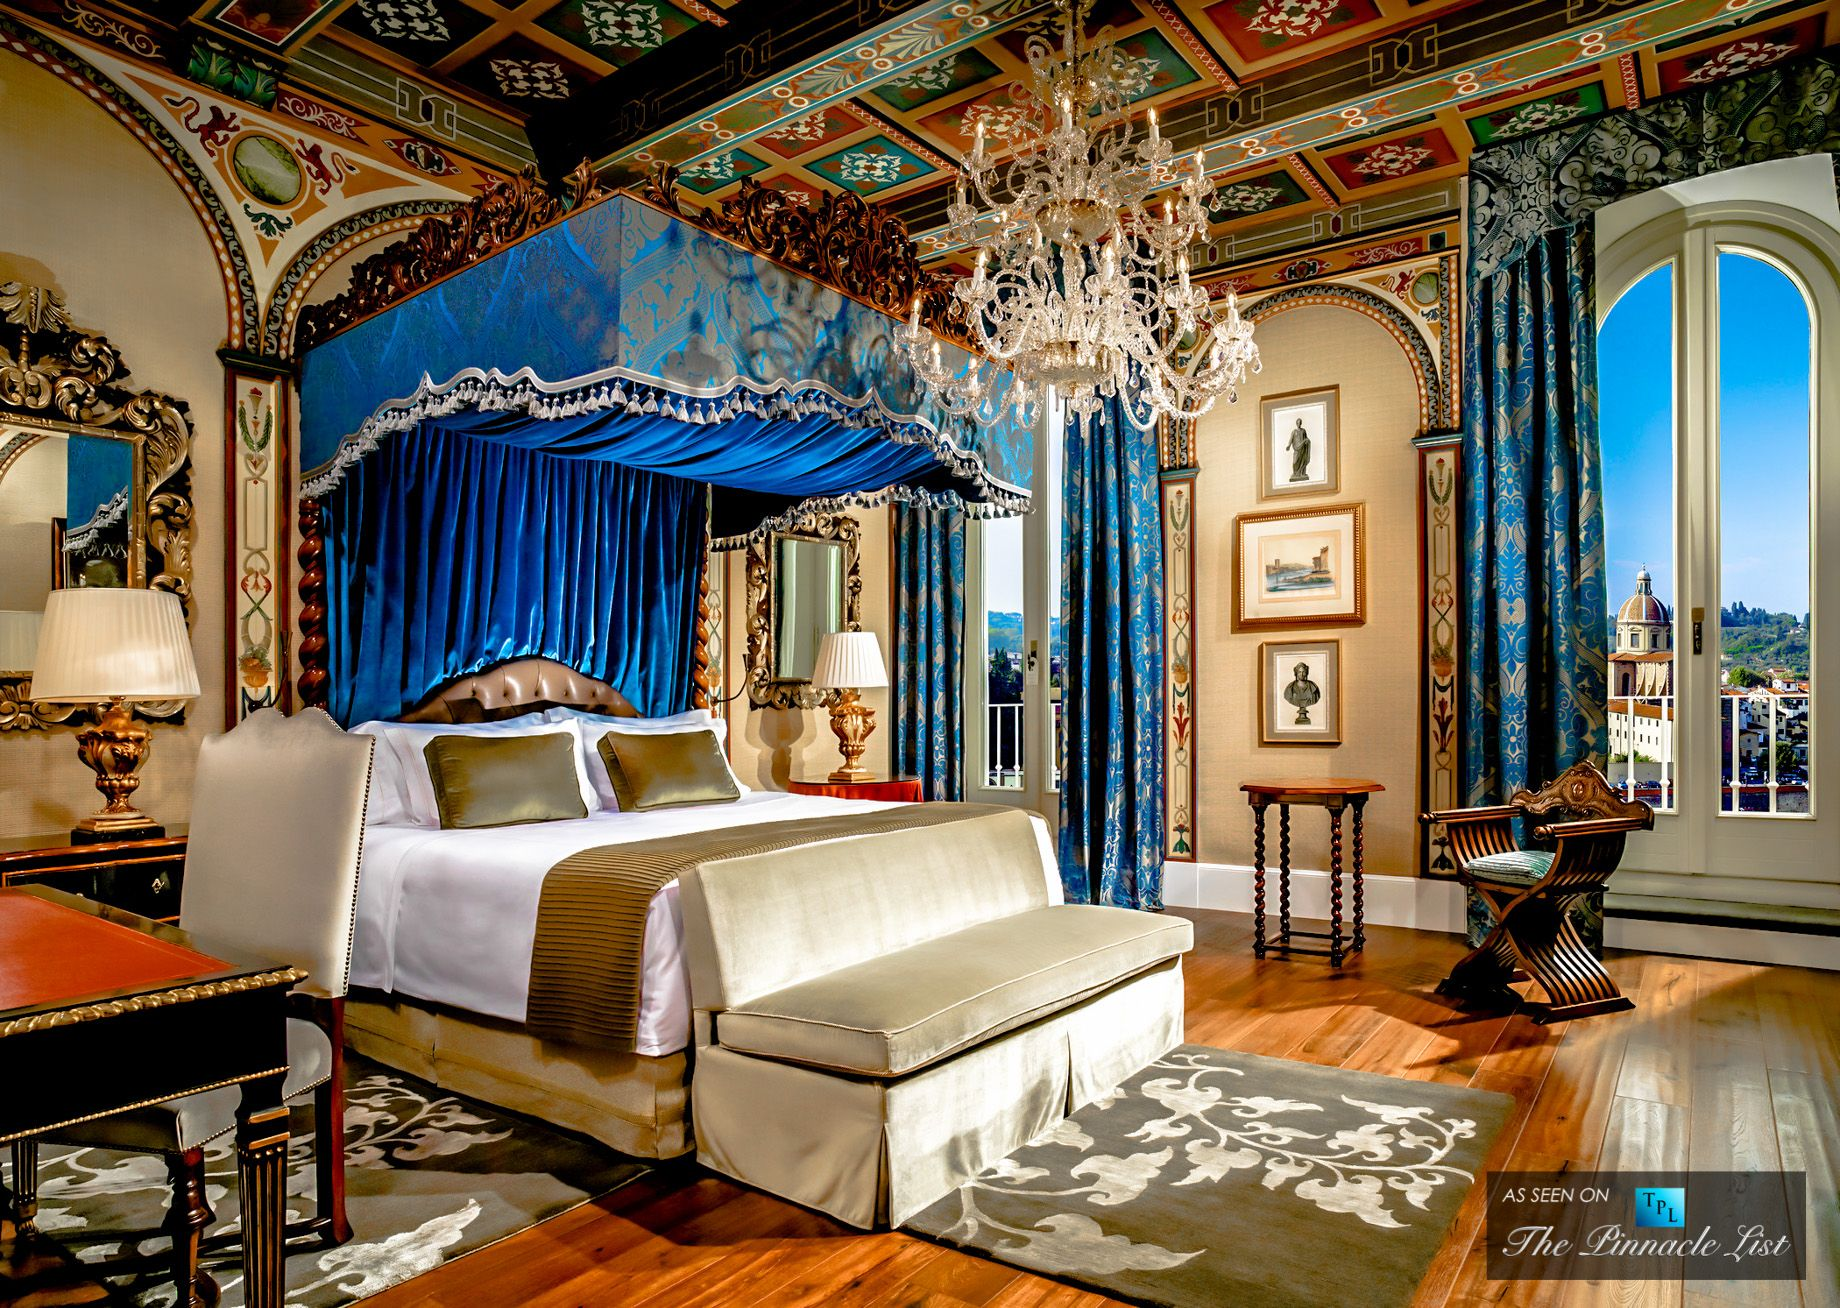 st regis luxury hotel florence italy royal suite gioconda